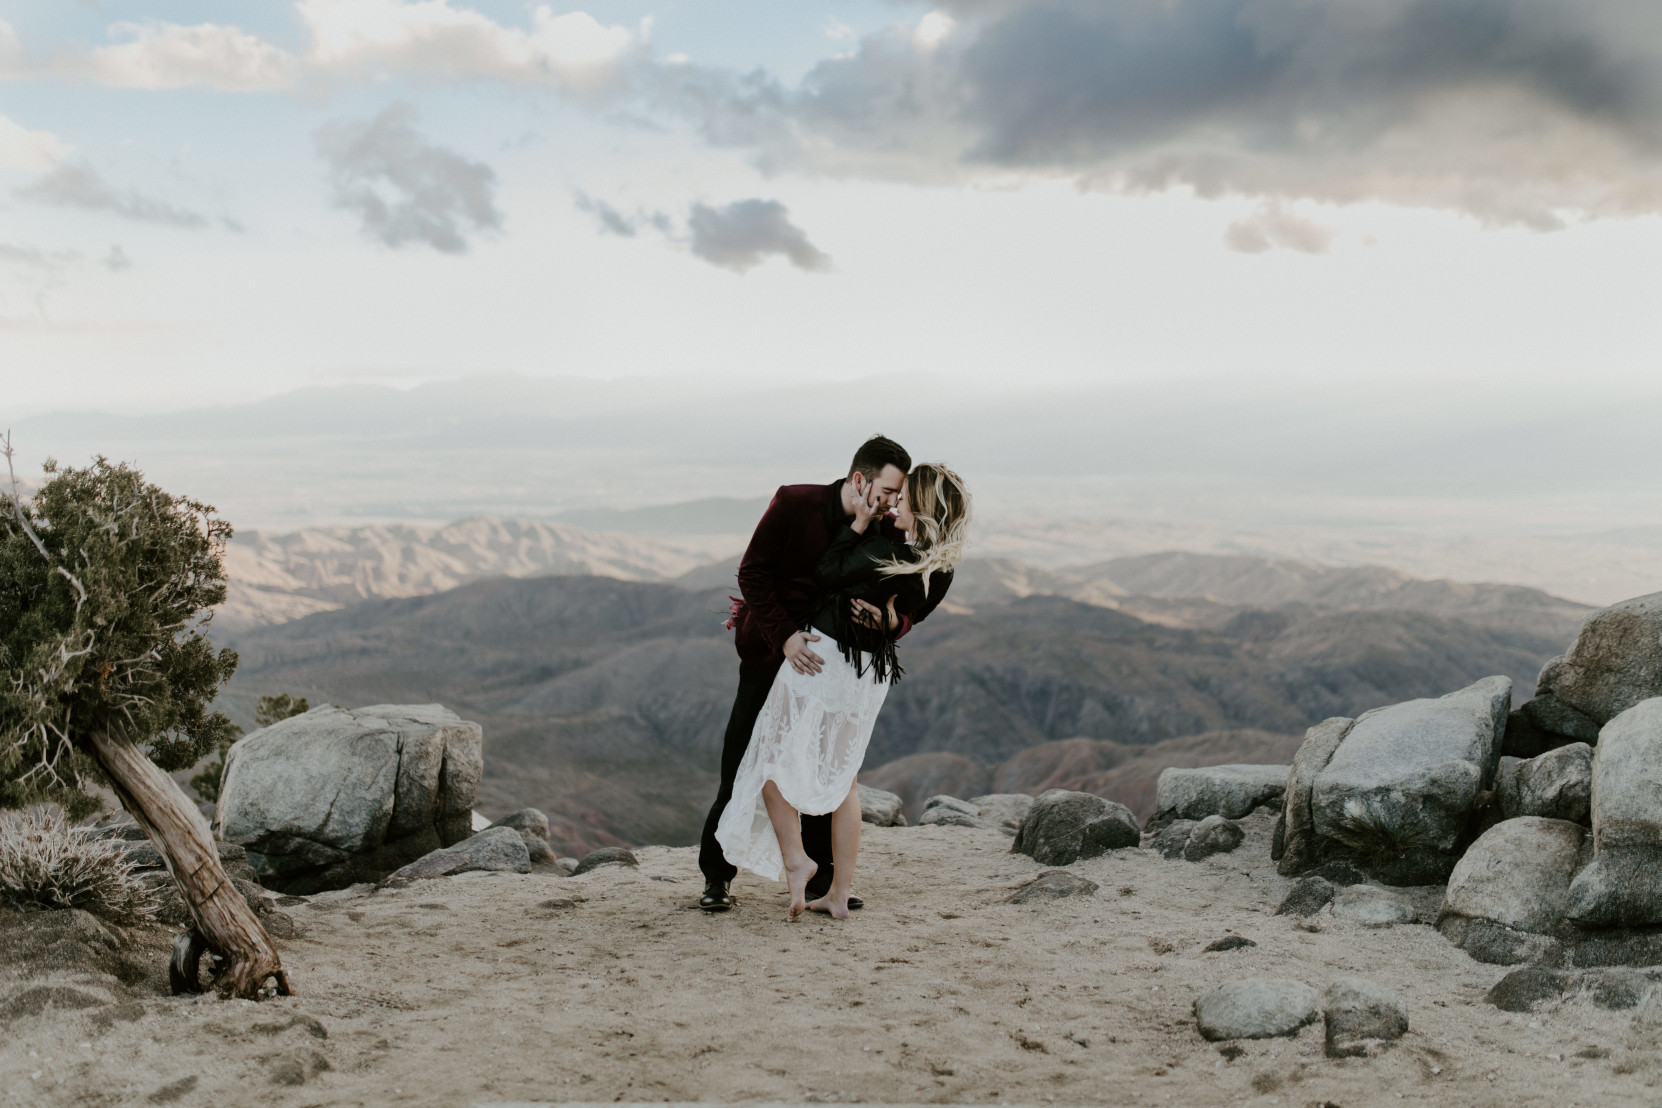 Alyssa and Jeremy kiss with a view Joshua Tree National Park, CA Elopement wedding photography at Joshua Tree National Park by Sienna Plus Josh.